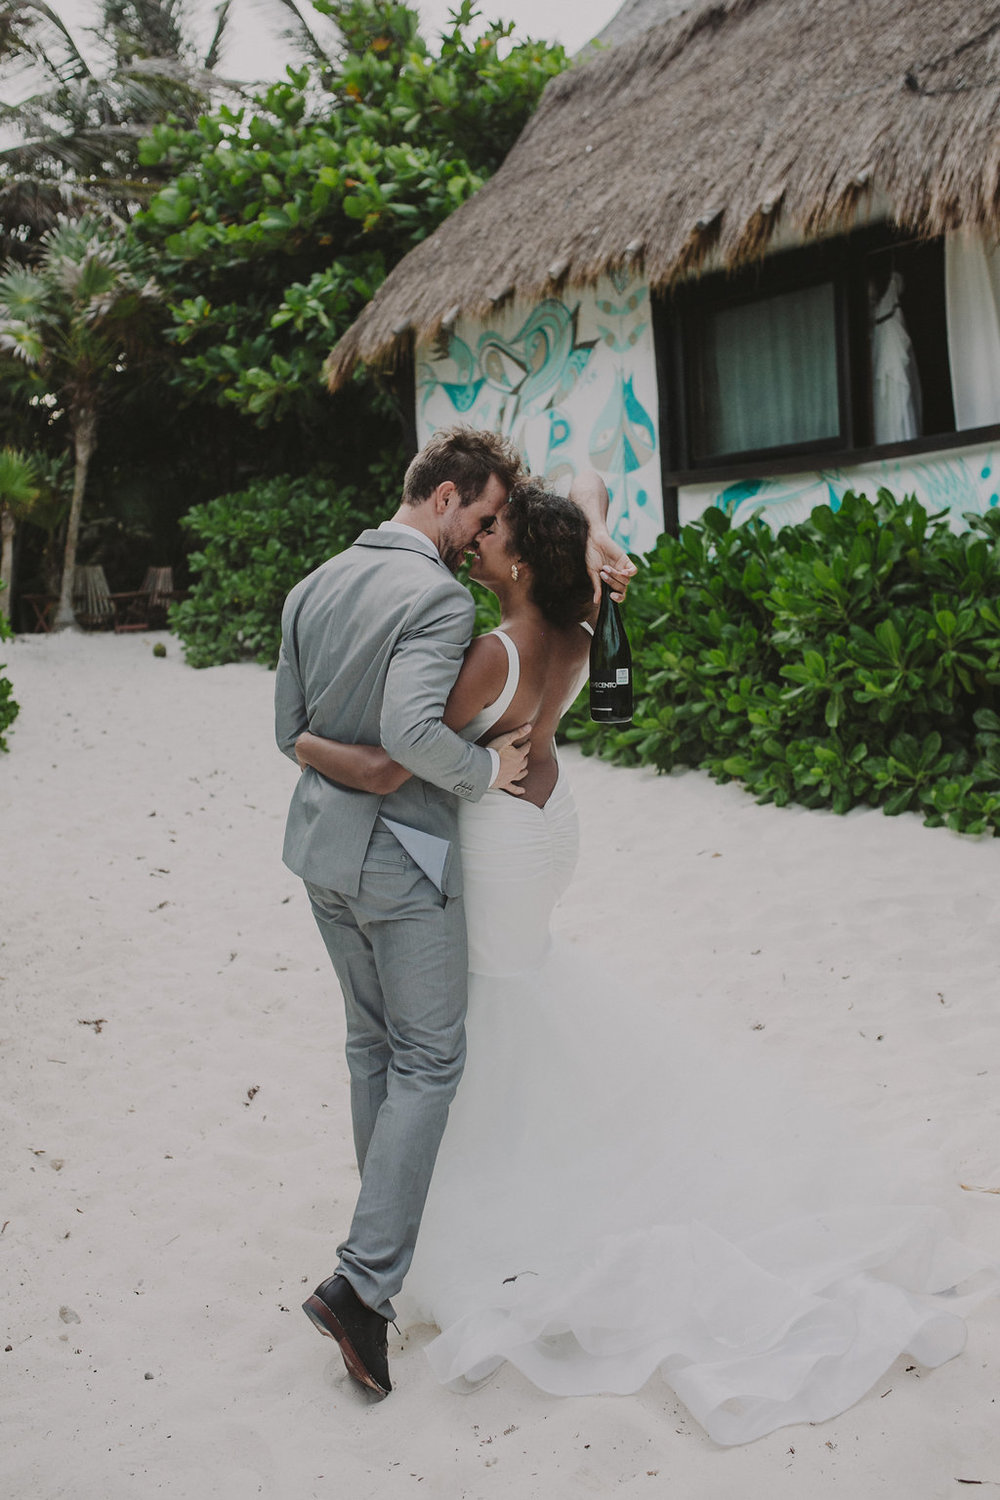 casa_violeta_wedding_tulum_photography_planner_rock_and_roll_chellisemichaelphotography_kerrybeachevents-8406.jpg